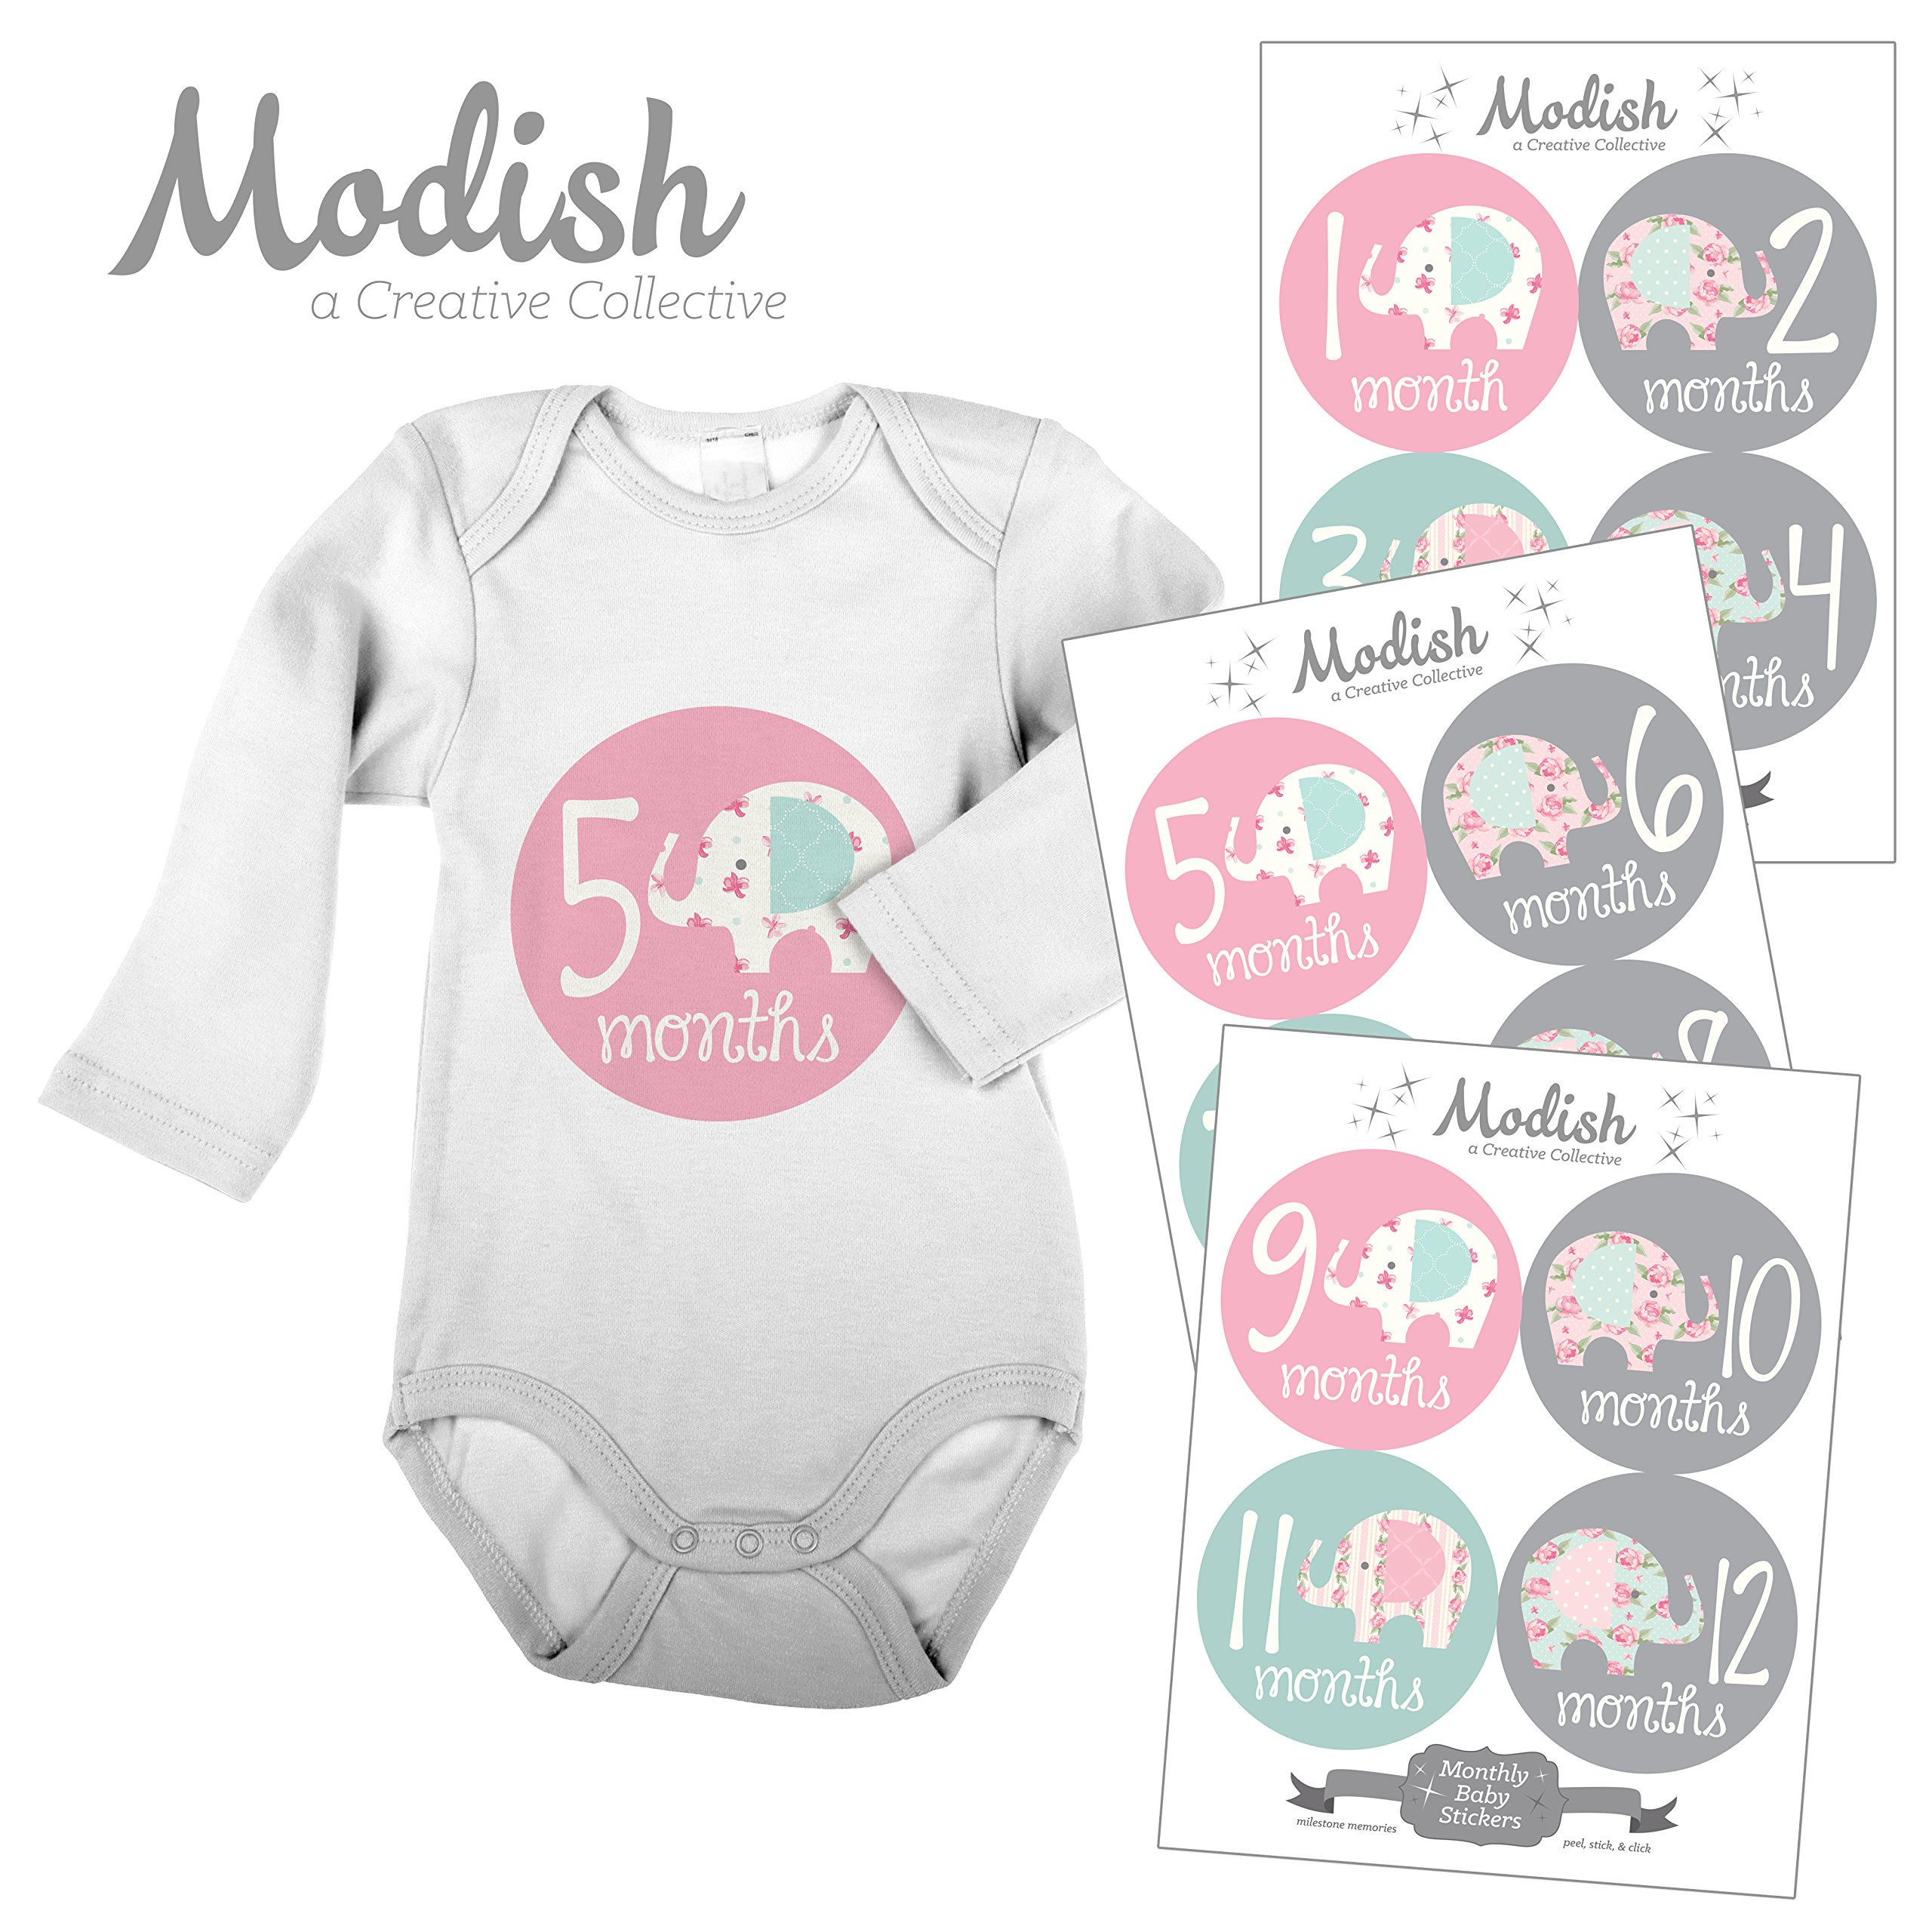 Modish - Creative Collective 12 Monthly Baby Stickers, Elephants, Baby Girl, Elephant Baby Belly Stickers, Elephant Monthly Onesie Stickers, First Year Stickers Months 1-12, Pink/Grey/Teal by Modish